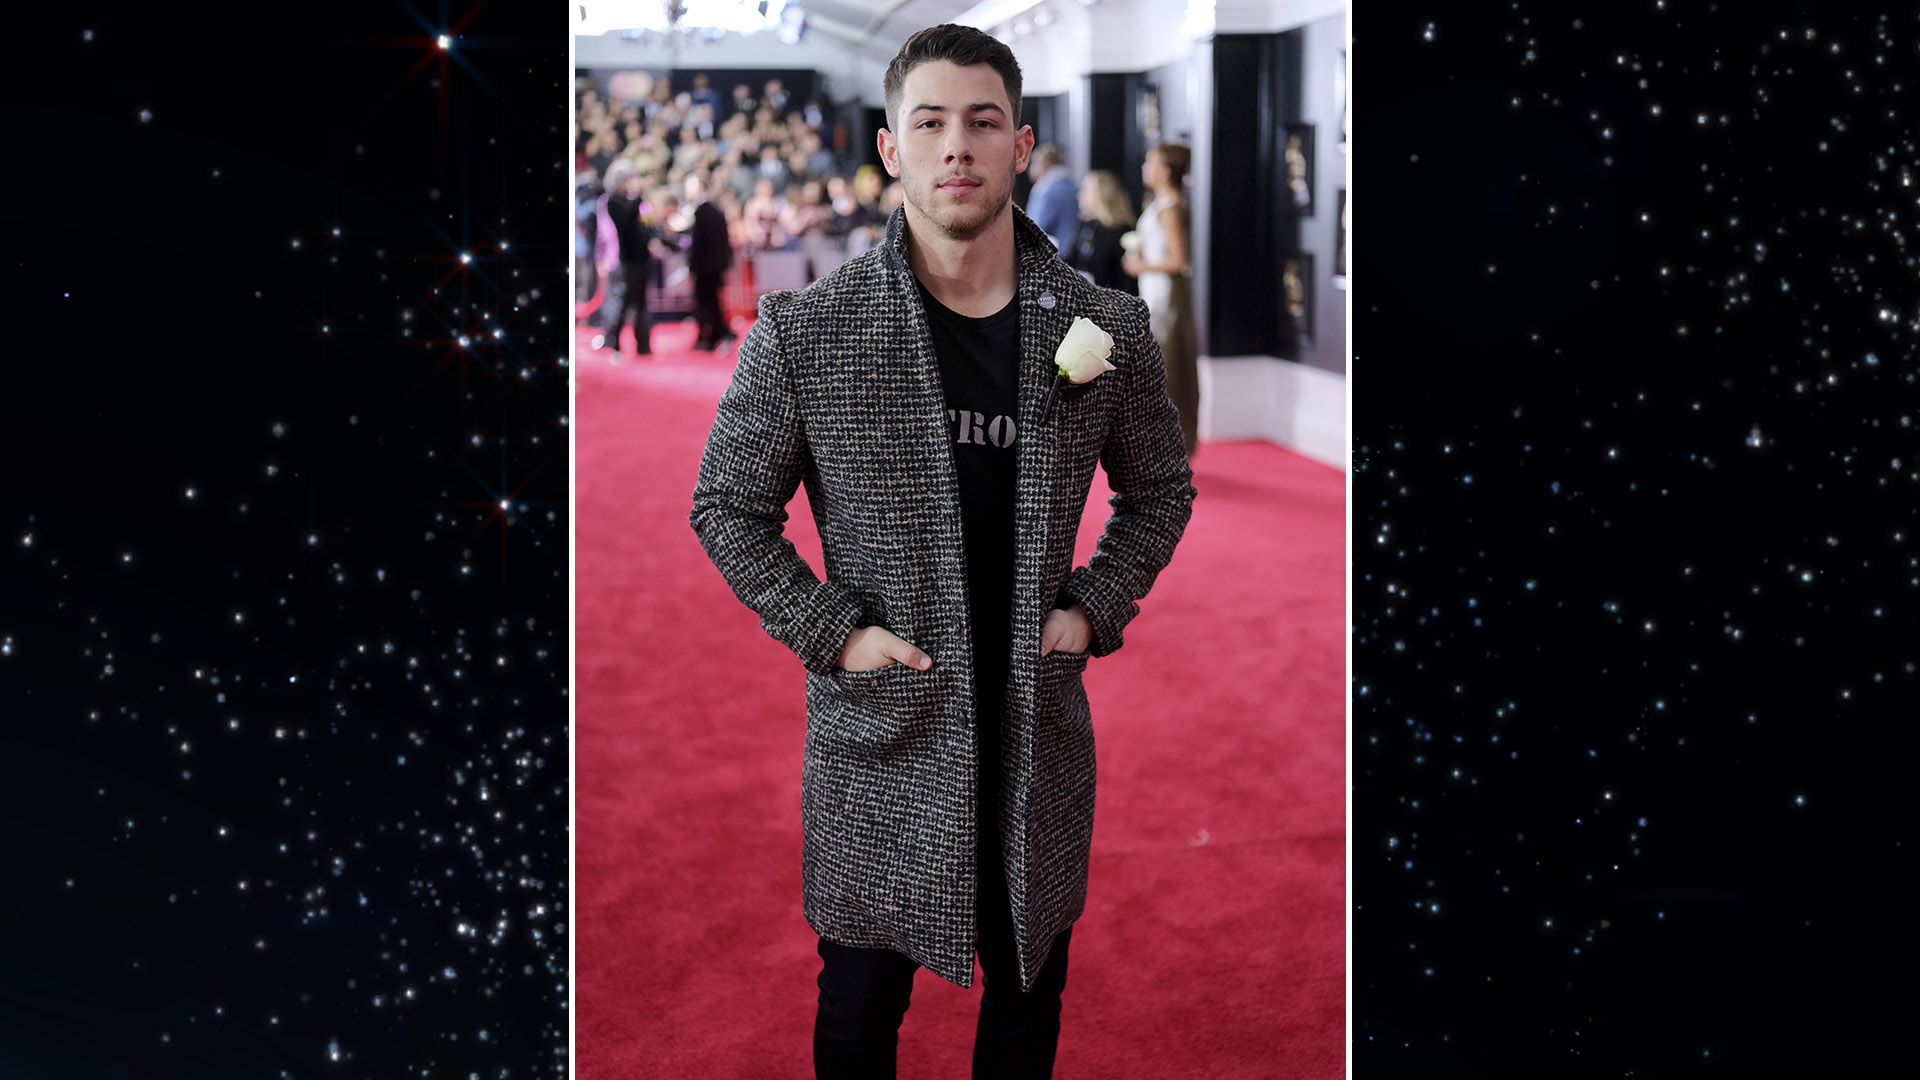 Singer Nick Jonas manages to warm up the red carpet, thanks to a tweed car coat.